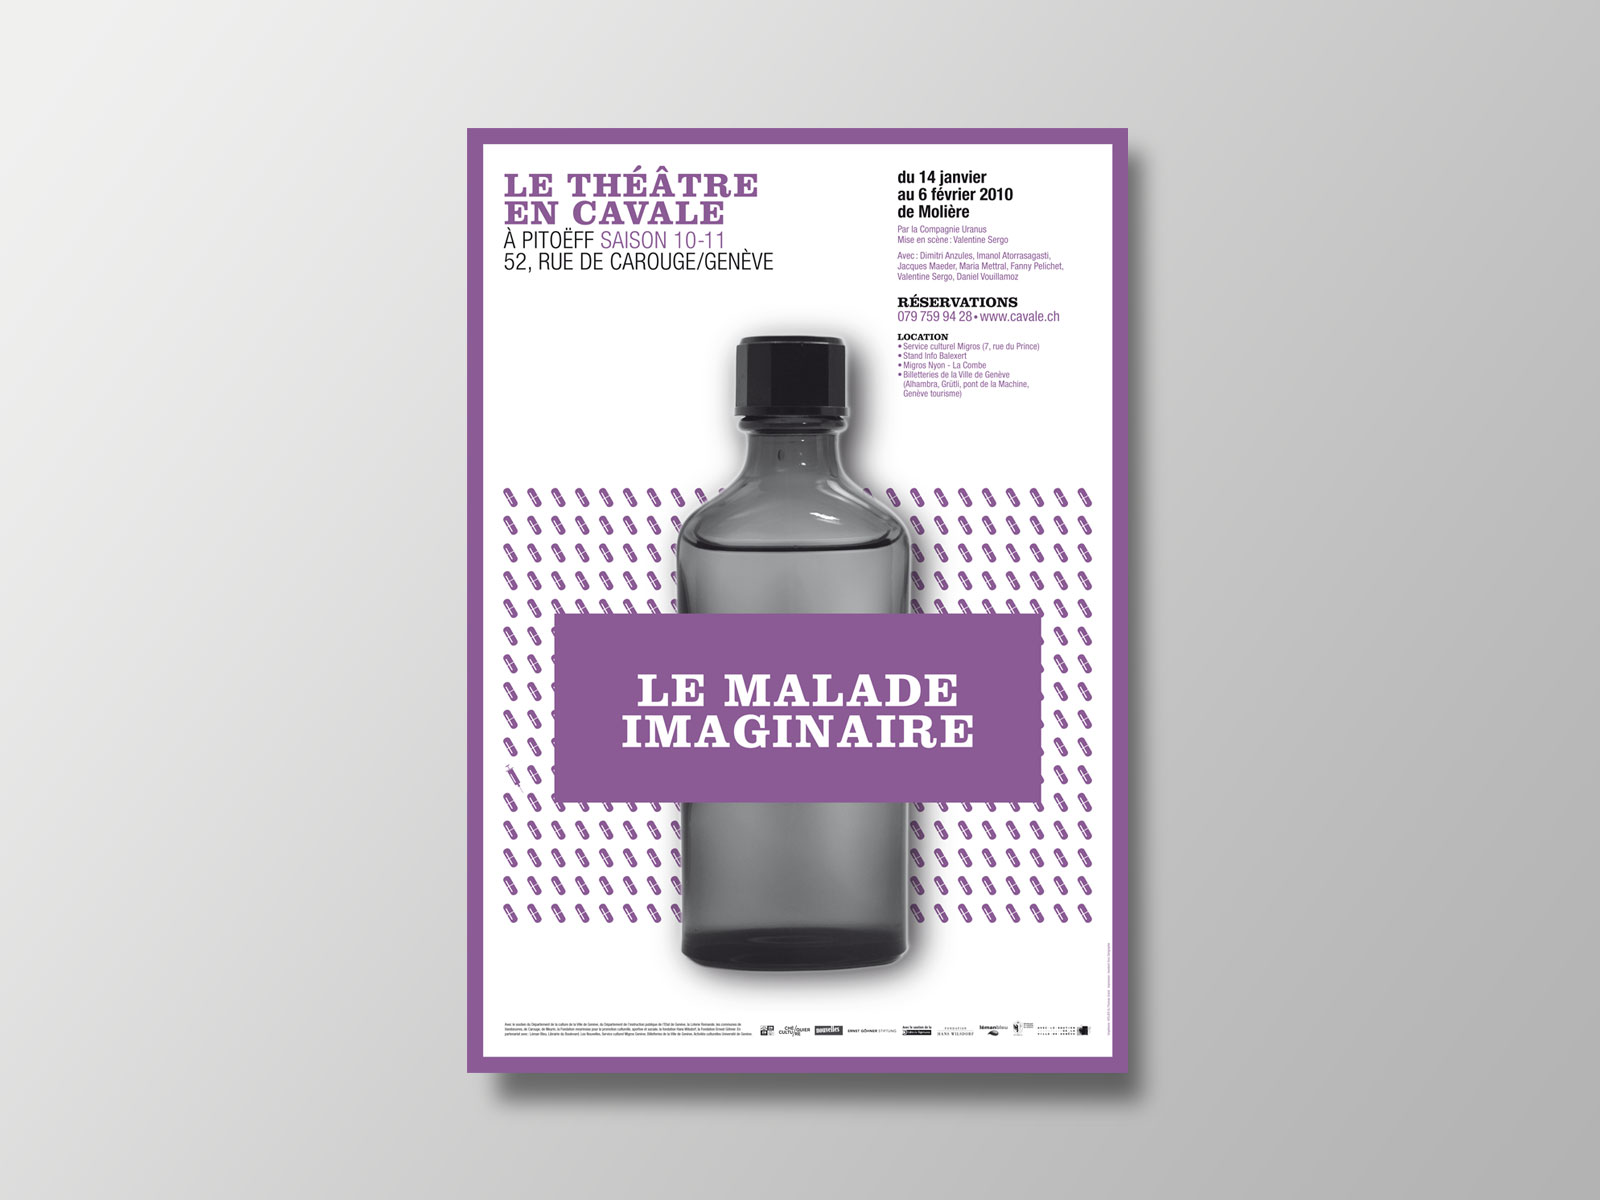 affiche-Cavale10-11-5-new